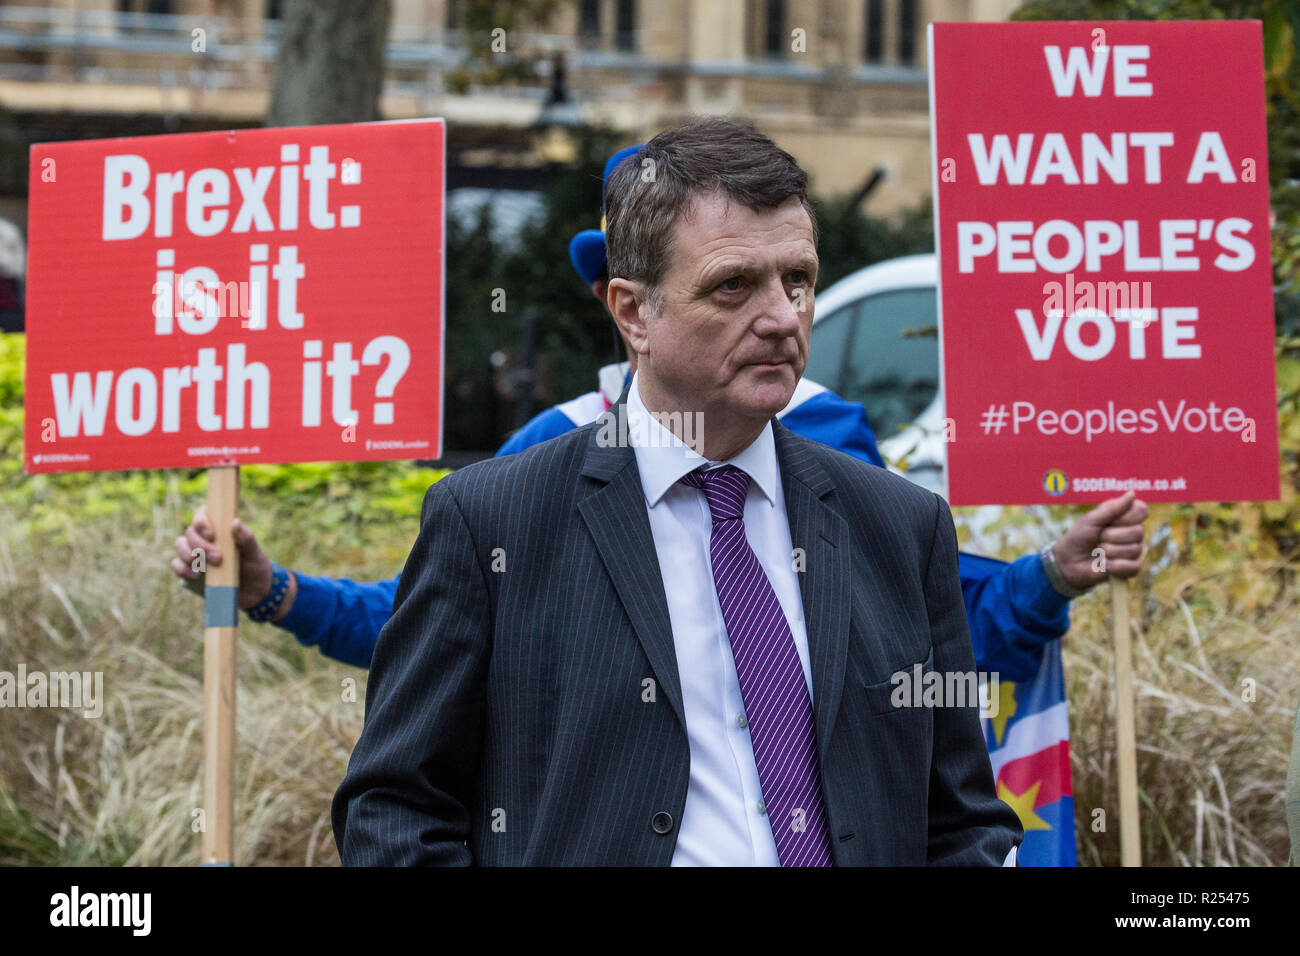 London, UK. 16th November, 2018. Gerard Batten, Leader of UKIP, appears on College Green in Westminster as uncertainty continues around the survival of Prime Minister Theresa May's Government and the number of letters of no confidence submitted to the 1922 Committee. Anti-Brexit activist Steve Bray of SODEM stands behind him holding two placards. Credit: Mark Kerrison/Alamy Live News - Stock Image